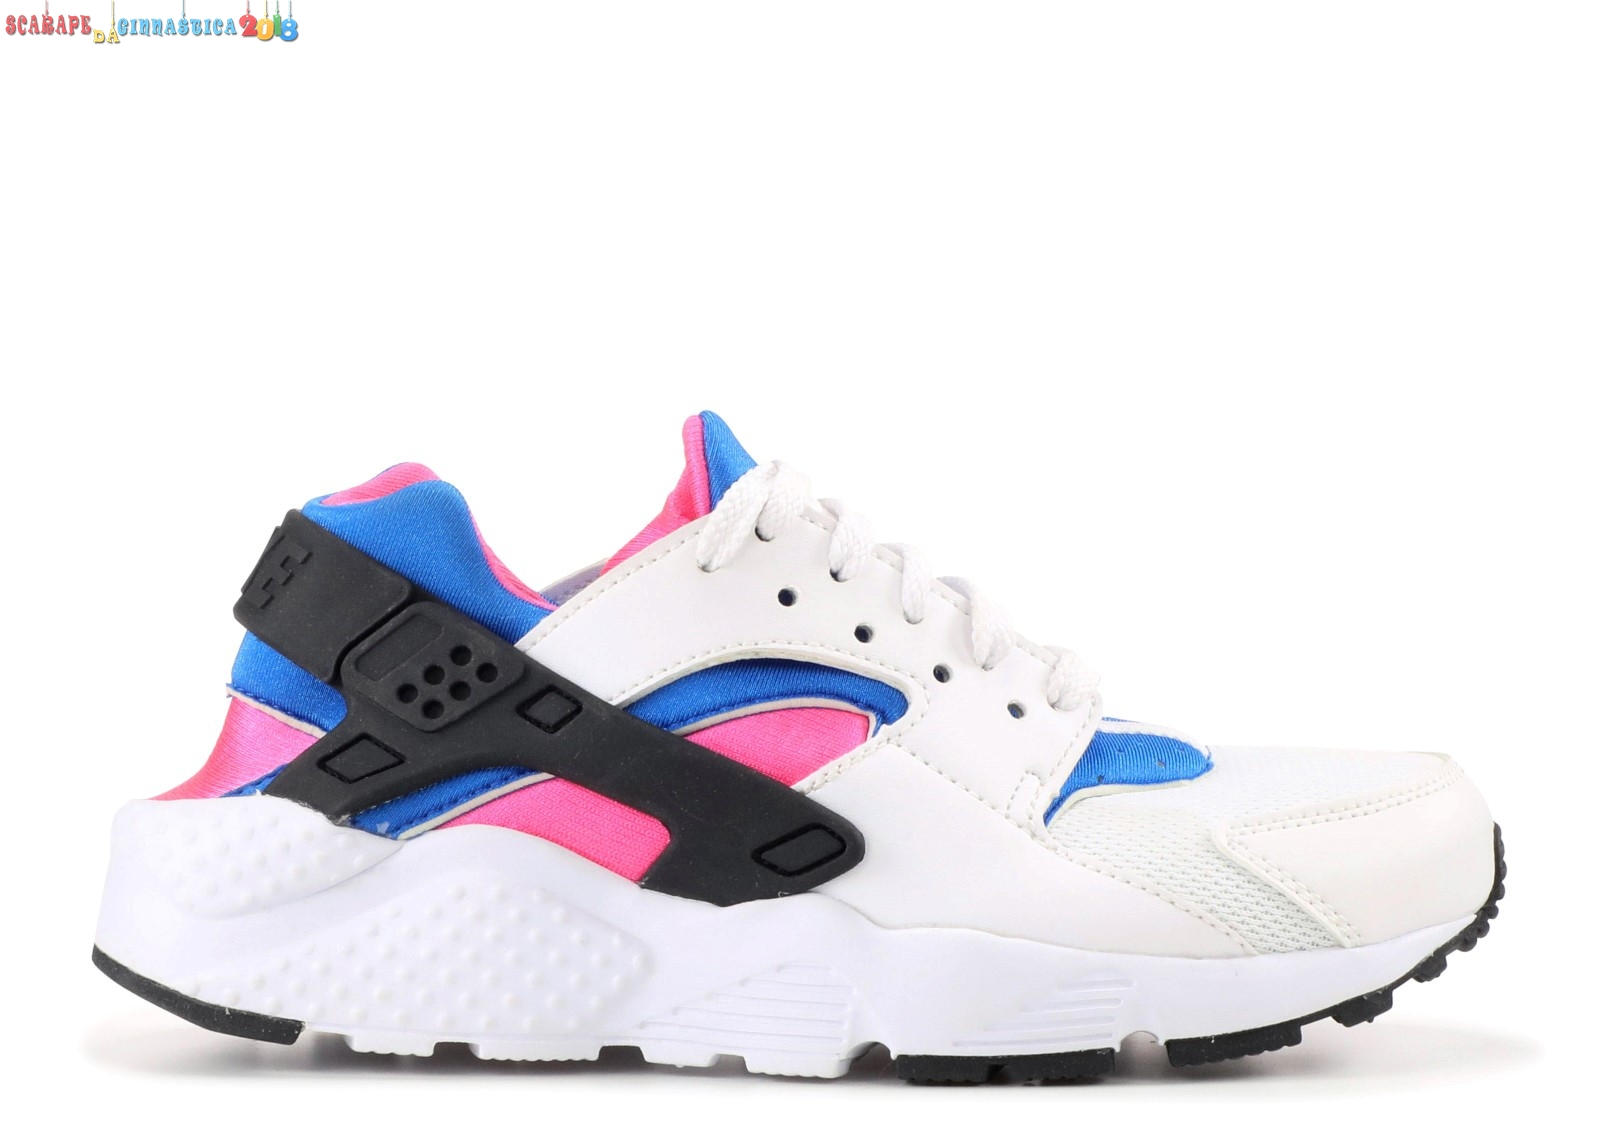 Replica Nike Air Huarache Run (Gs) Bianca Nero Rosa (654275-104) Online